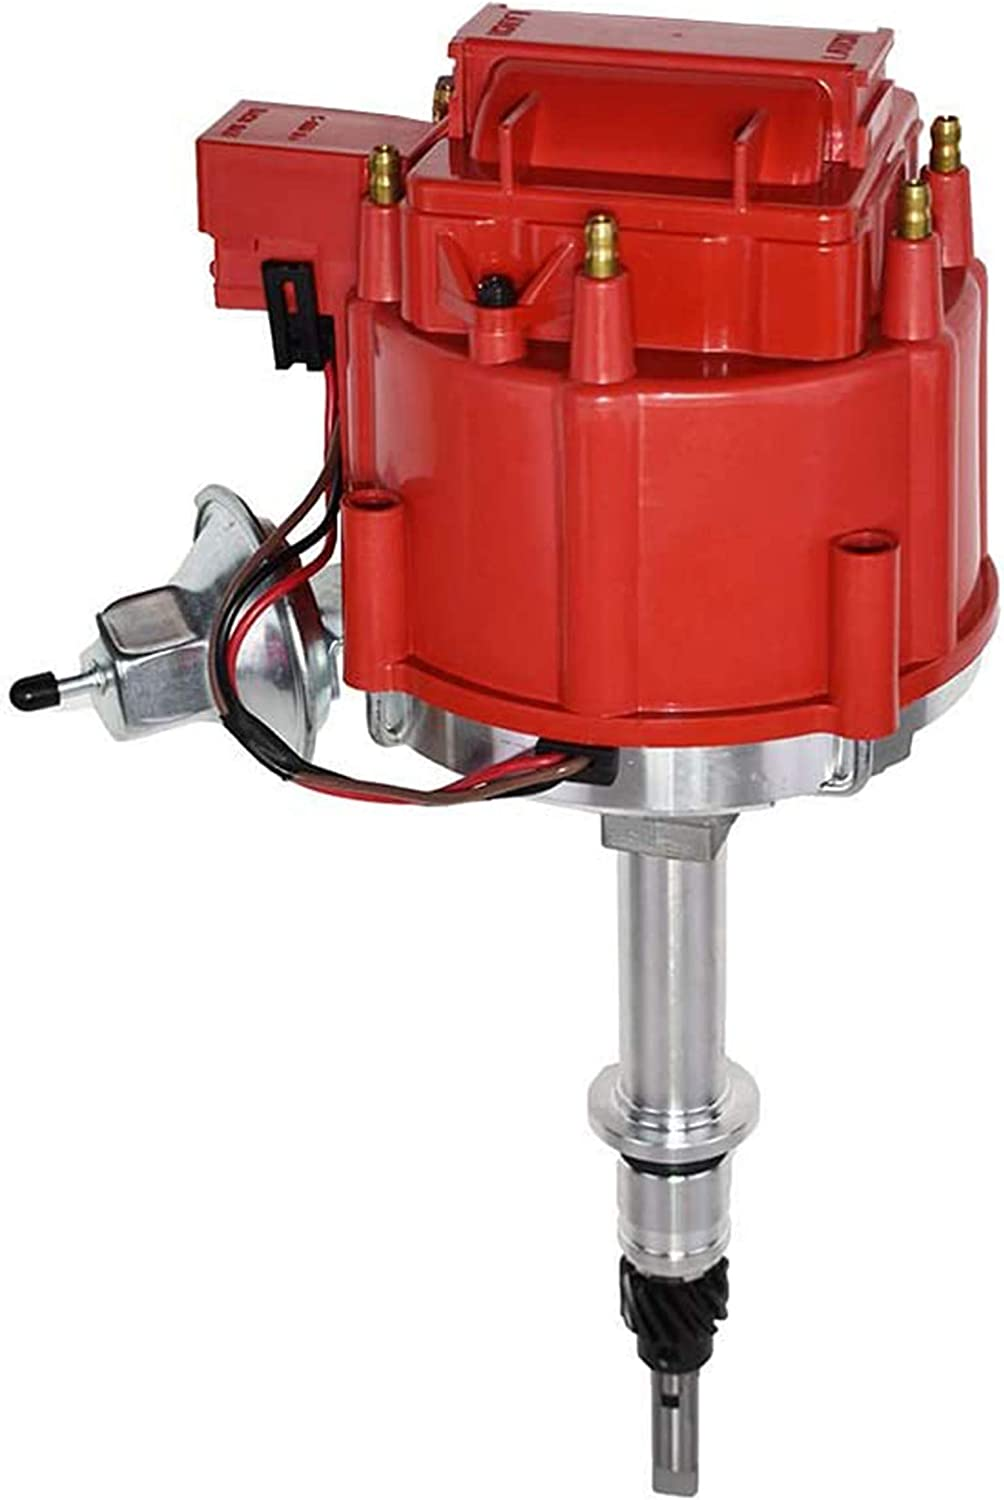 A-Team Performance Complete HEI Distributor 65K Coil 7500 RPM Compatible with Chevrolet Chevy GM GMC Truck Late Model Inline 6 Cylinder 230 250 292 One Wire Installation Red Cap